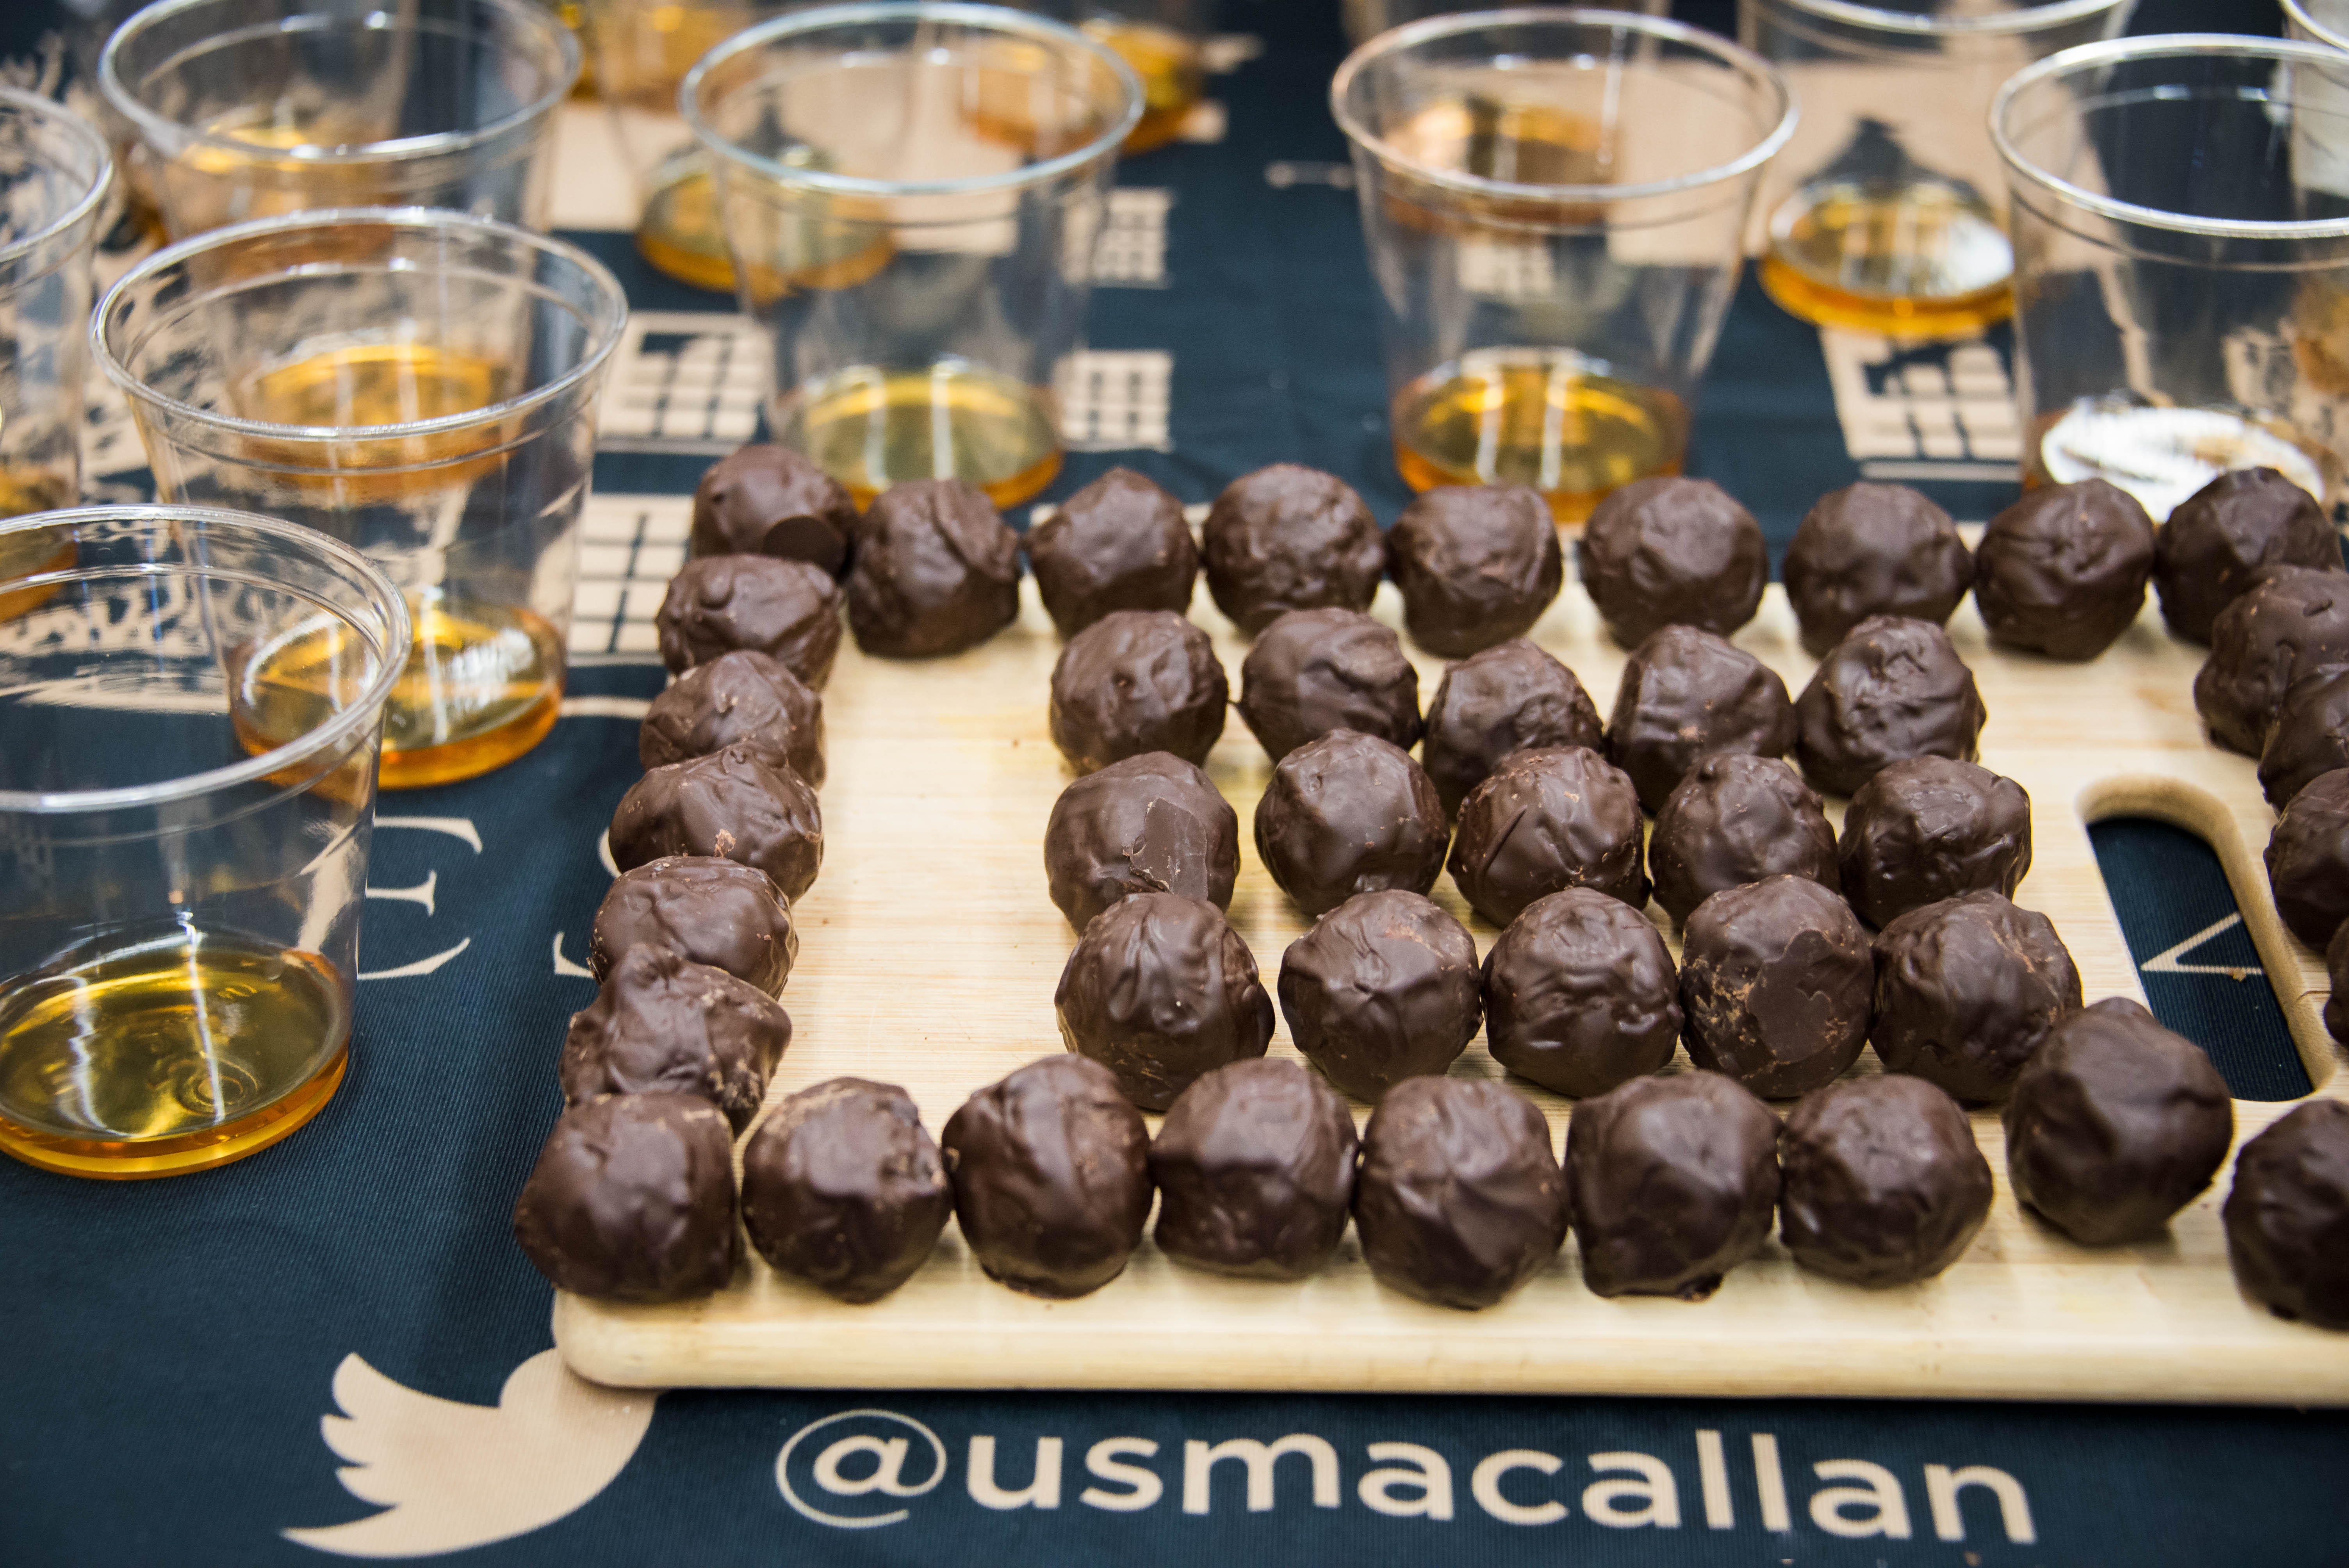 dude-sweet-chocolate-the-dish-the-macallan